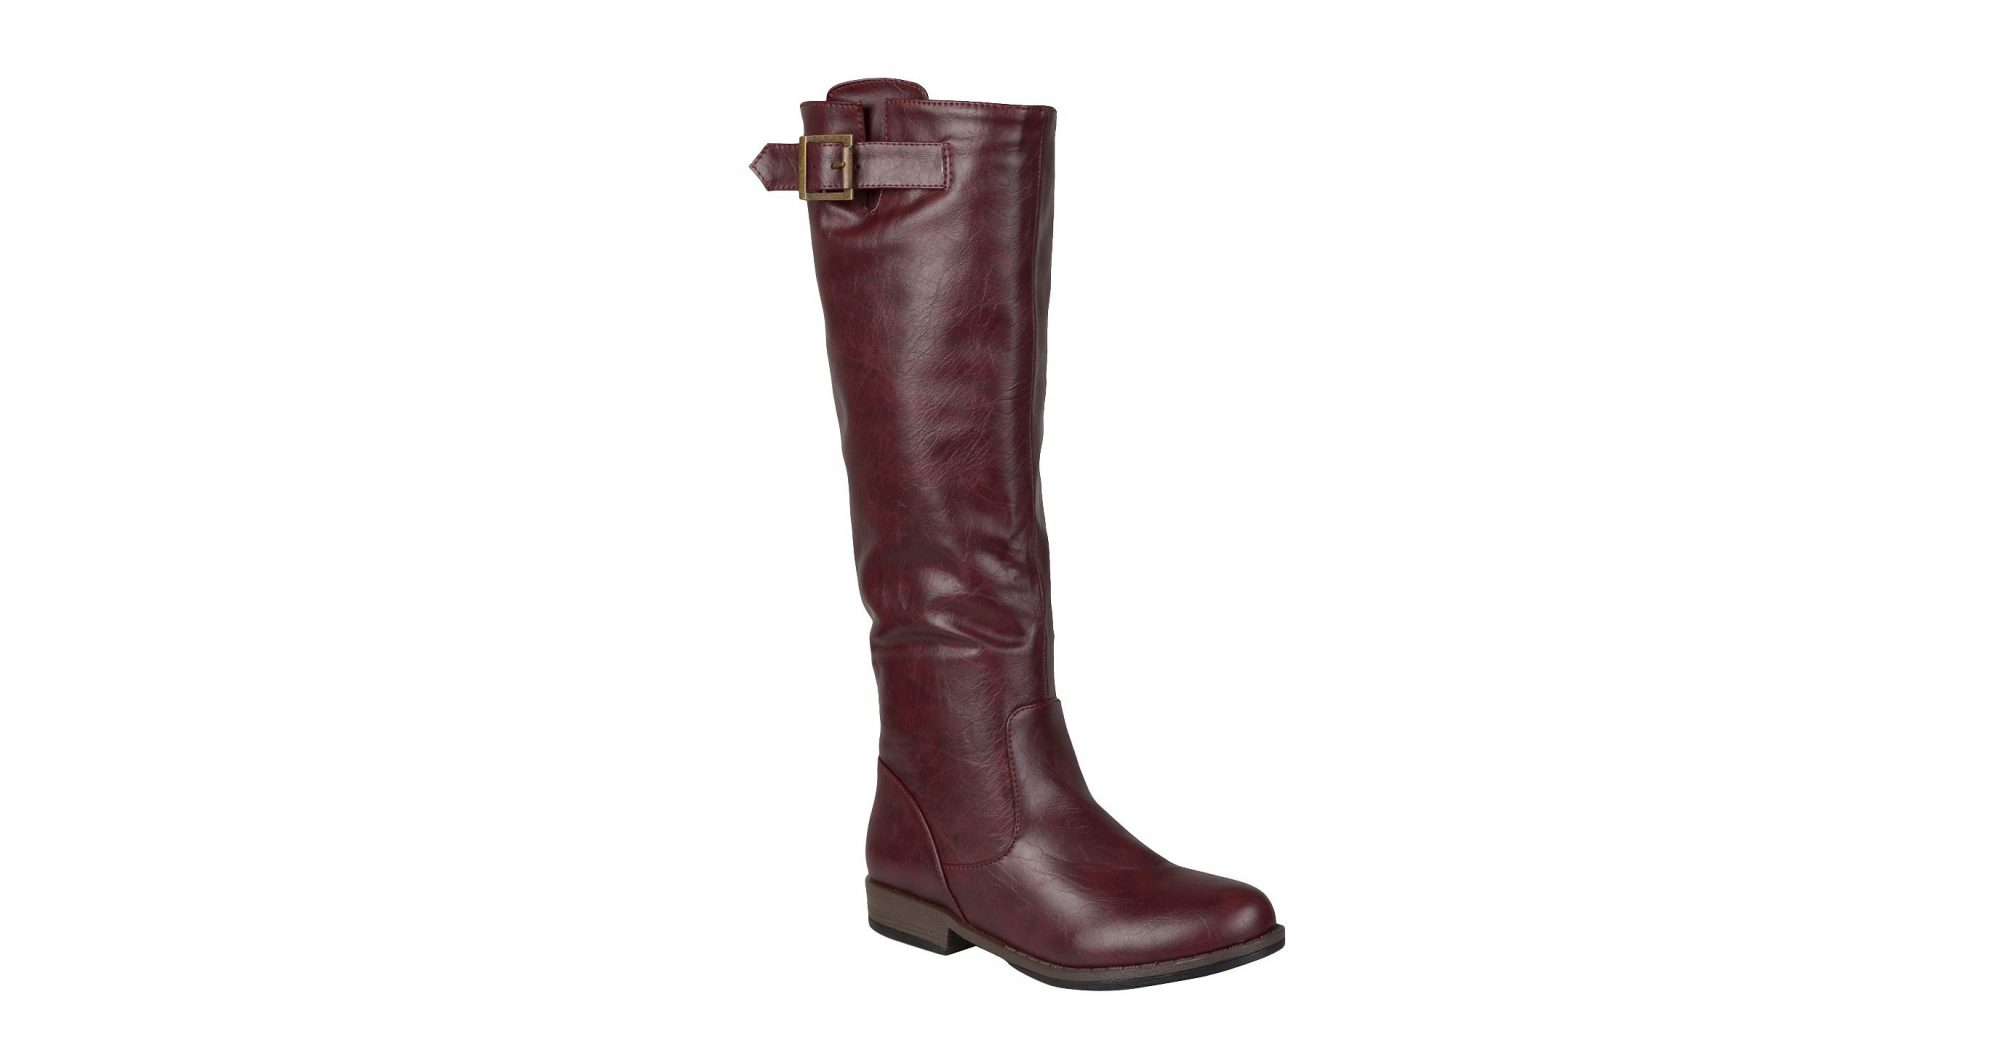 journee-collection-buckle-detail-fashion-boots